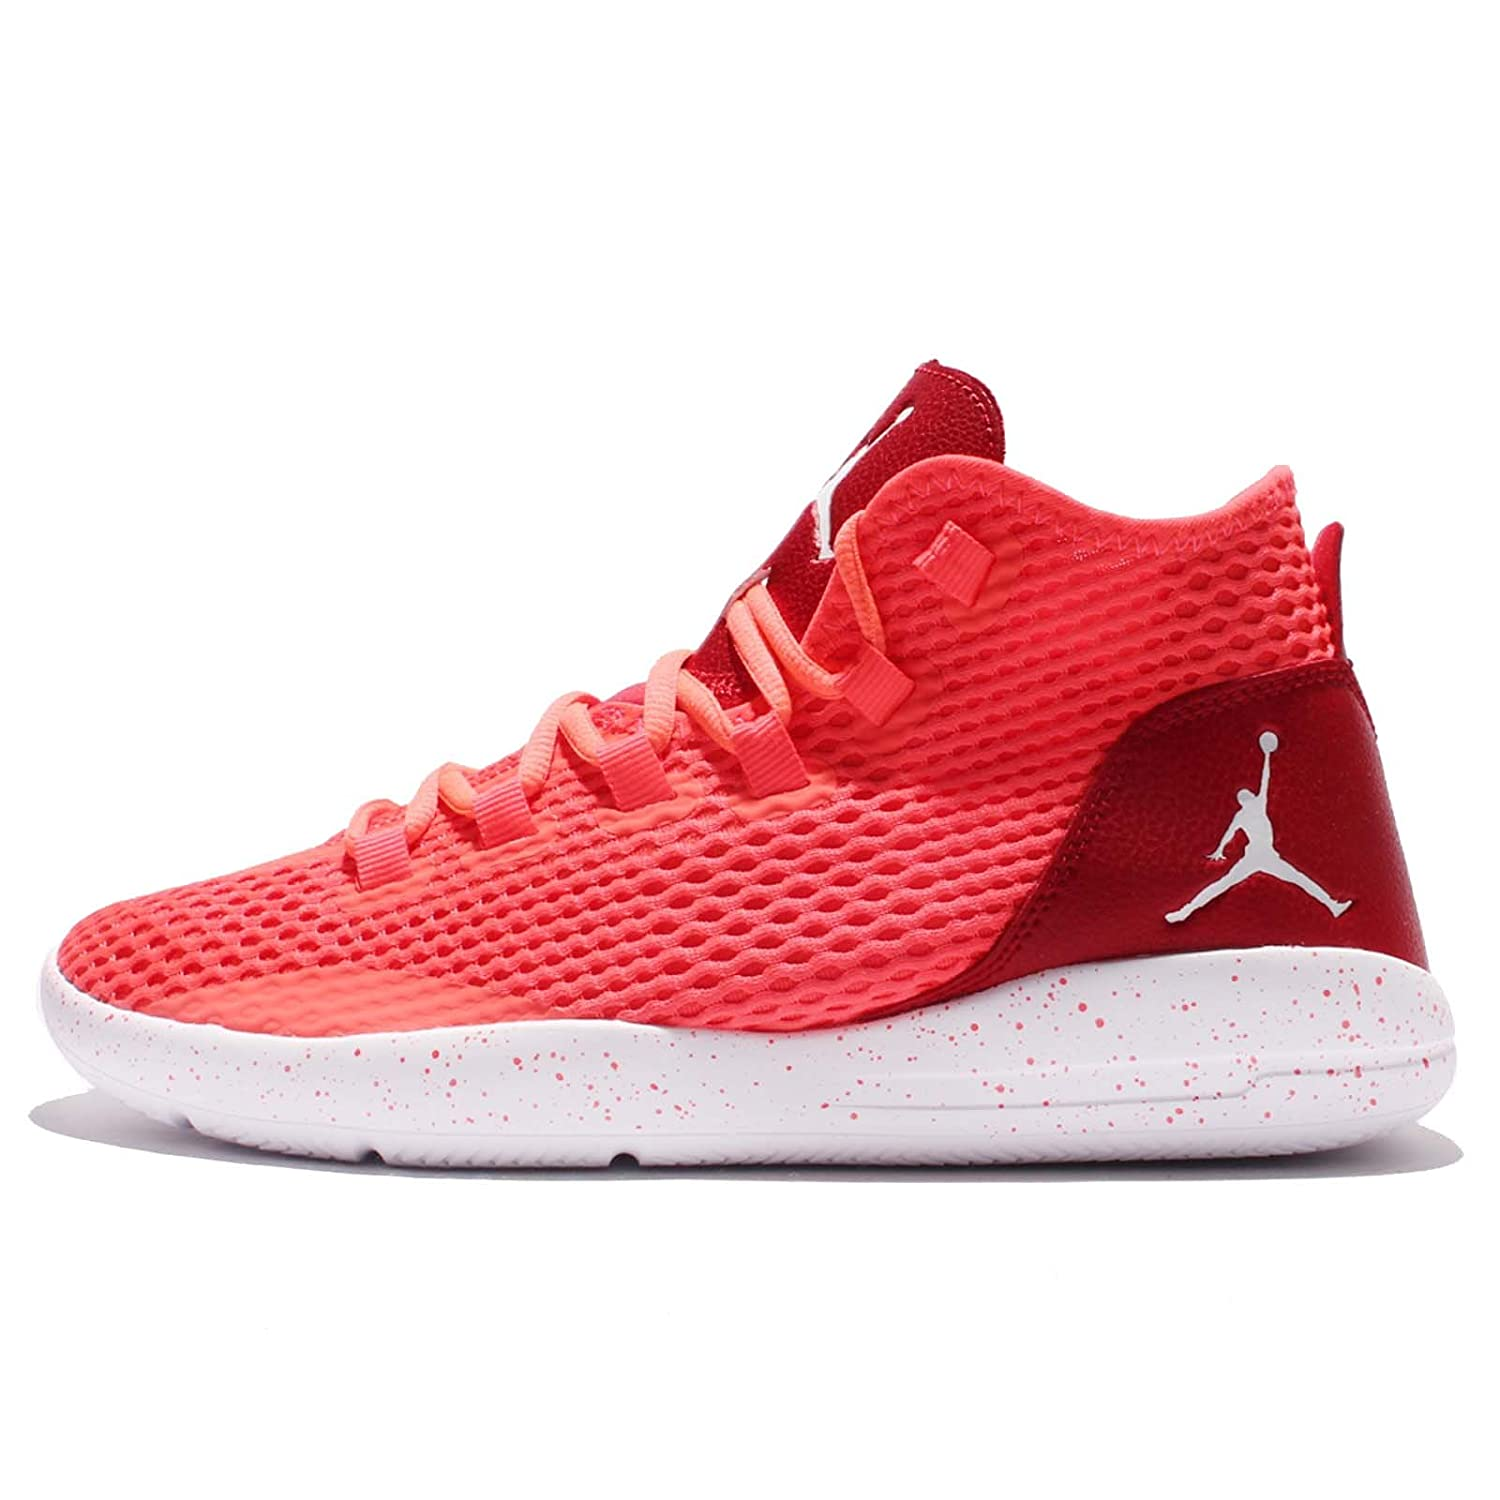 Infrared 23 Gym Red White Jordan Nike Men's Reveal Basketball shoes